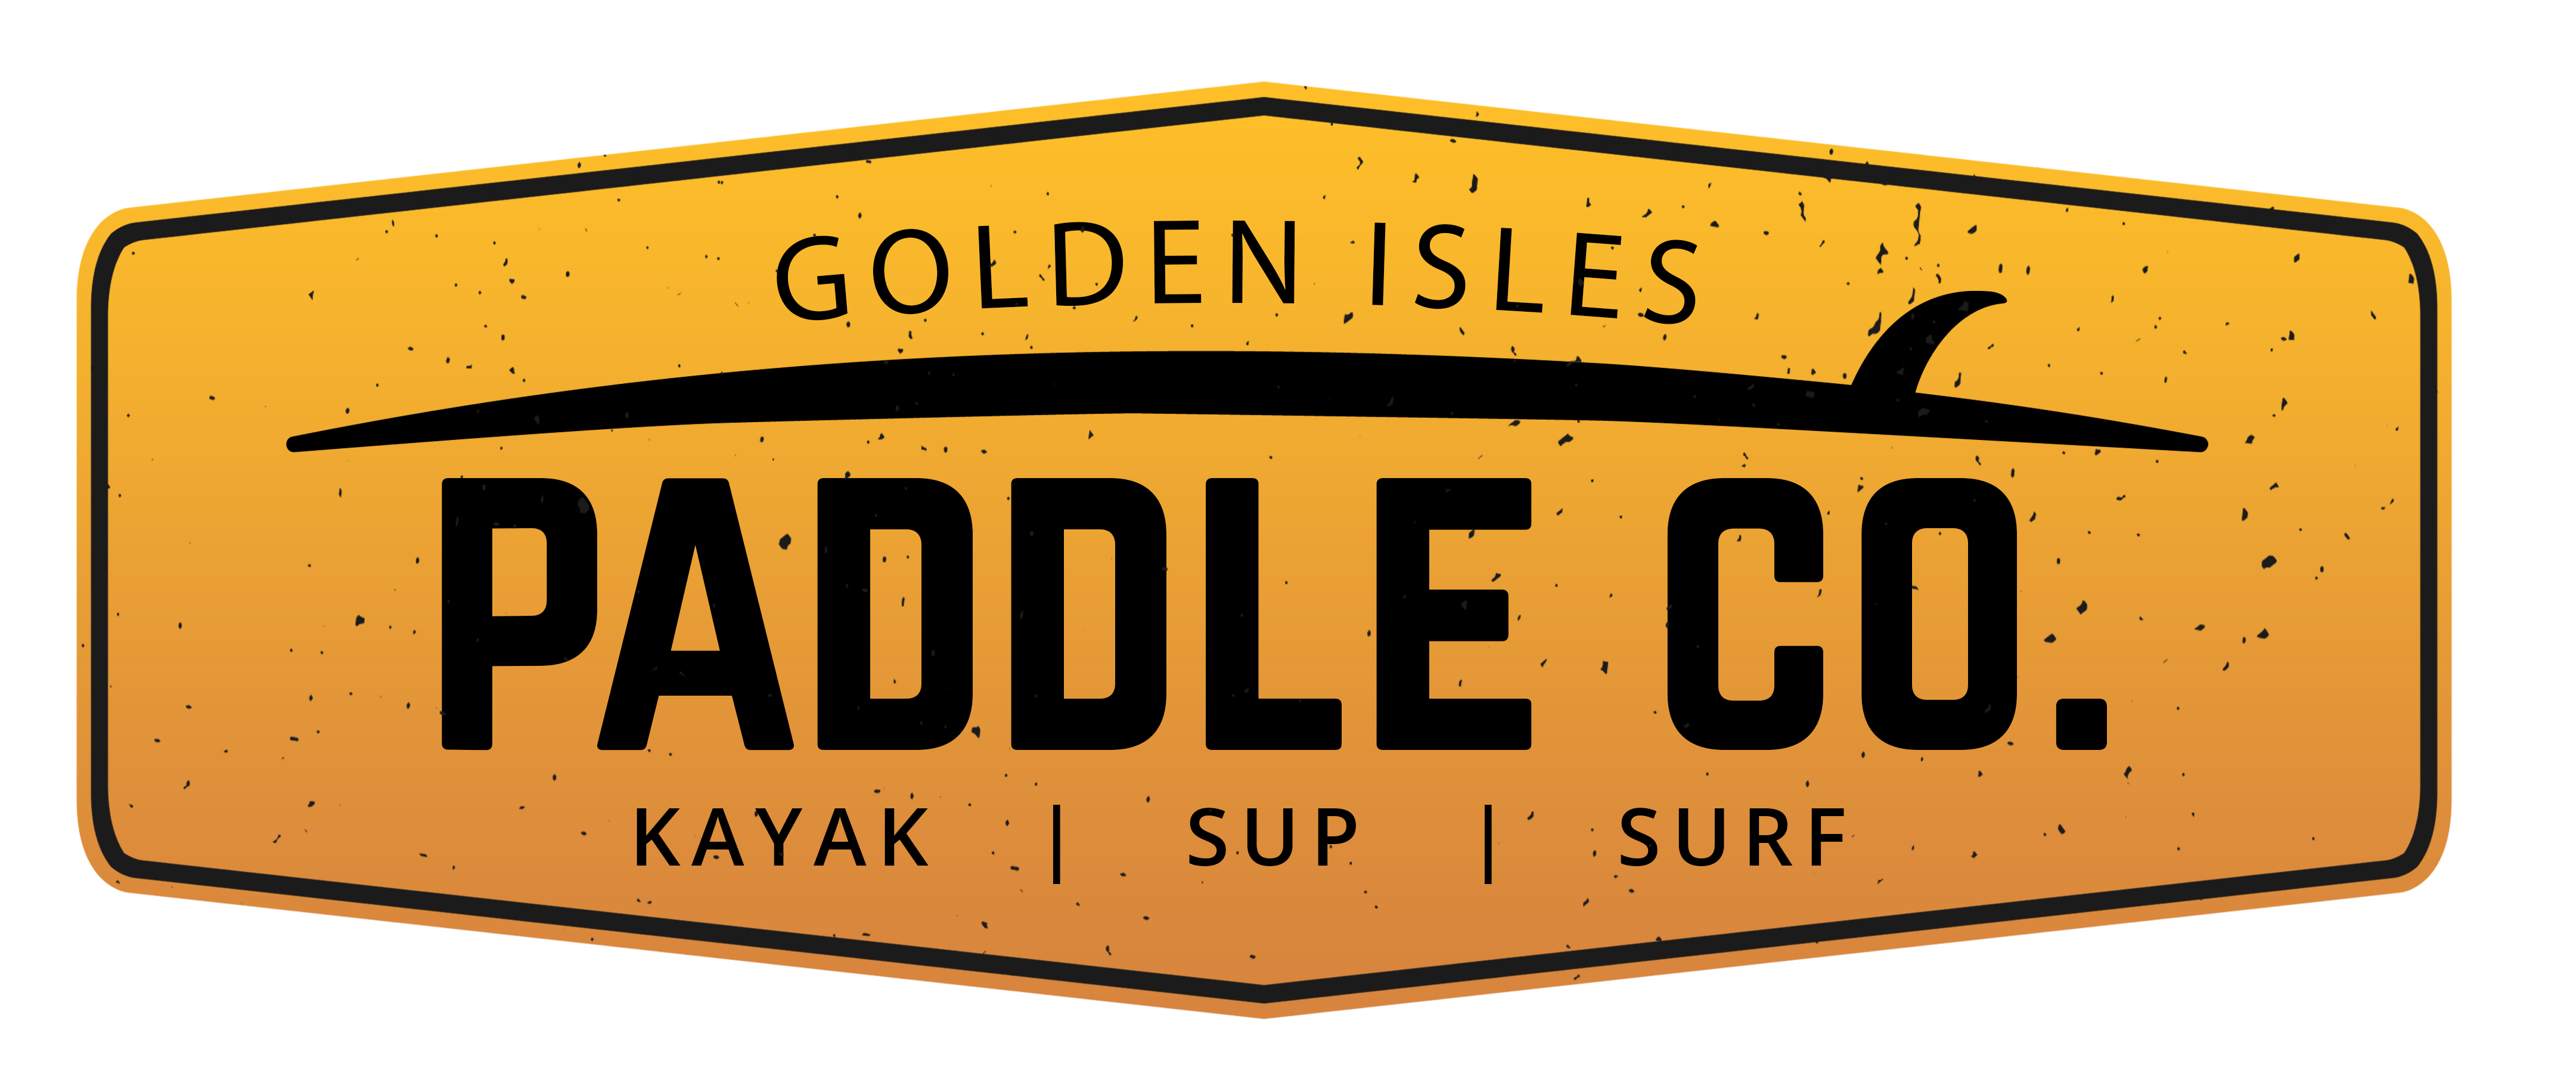 Golden Isles Paddle Co.